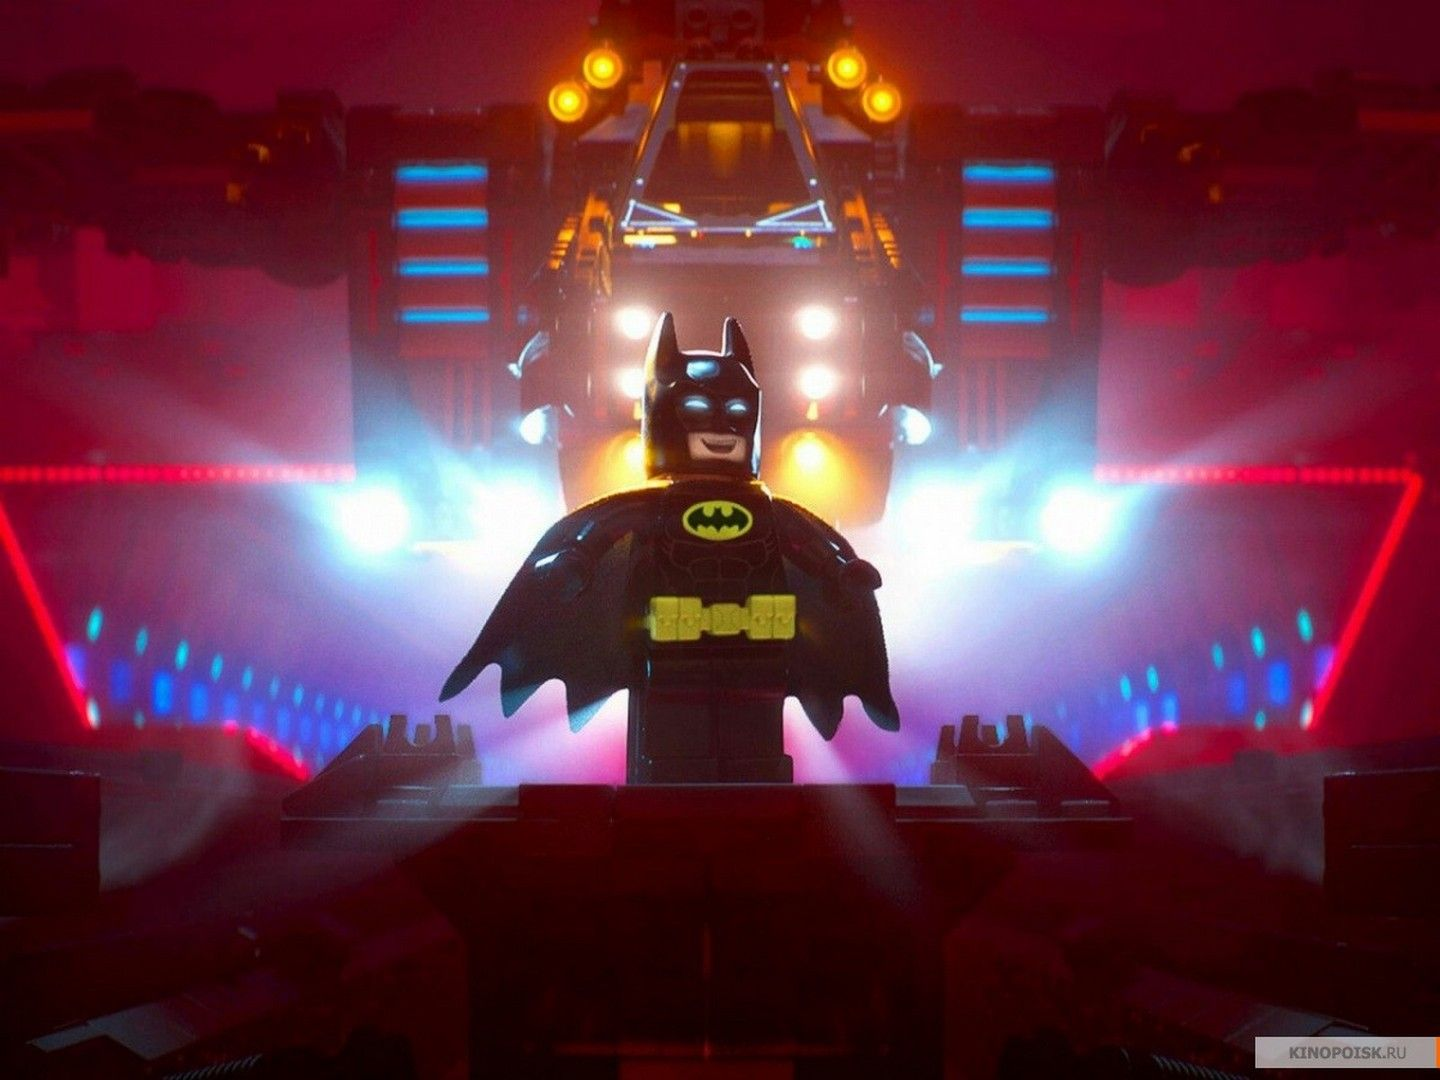 The Lego Batman Movie Wallpaper Hd The Lego Batman Movie